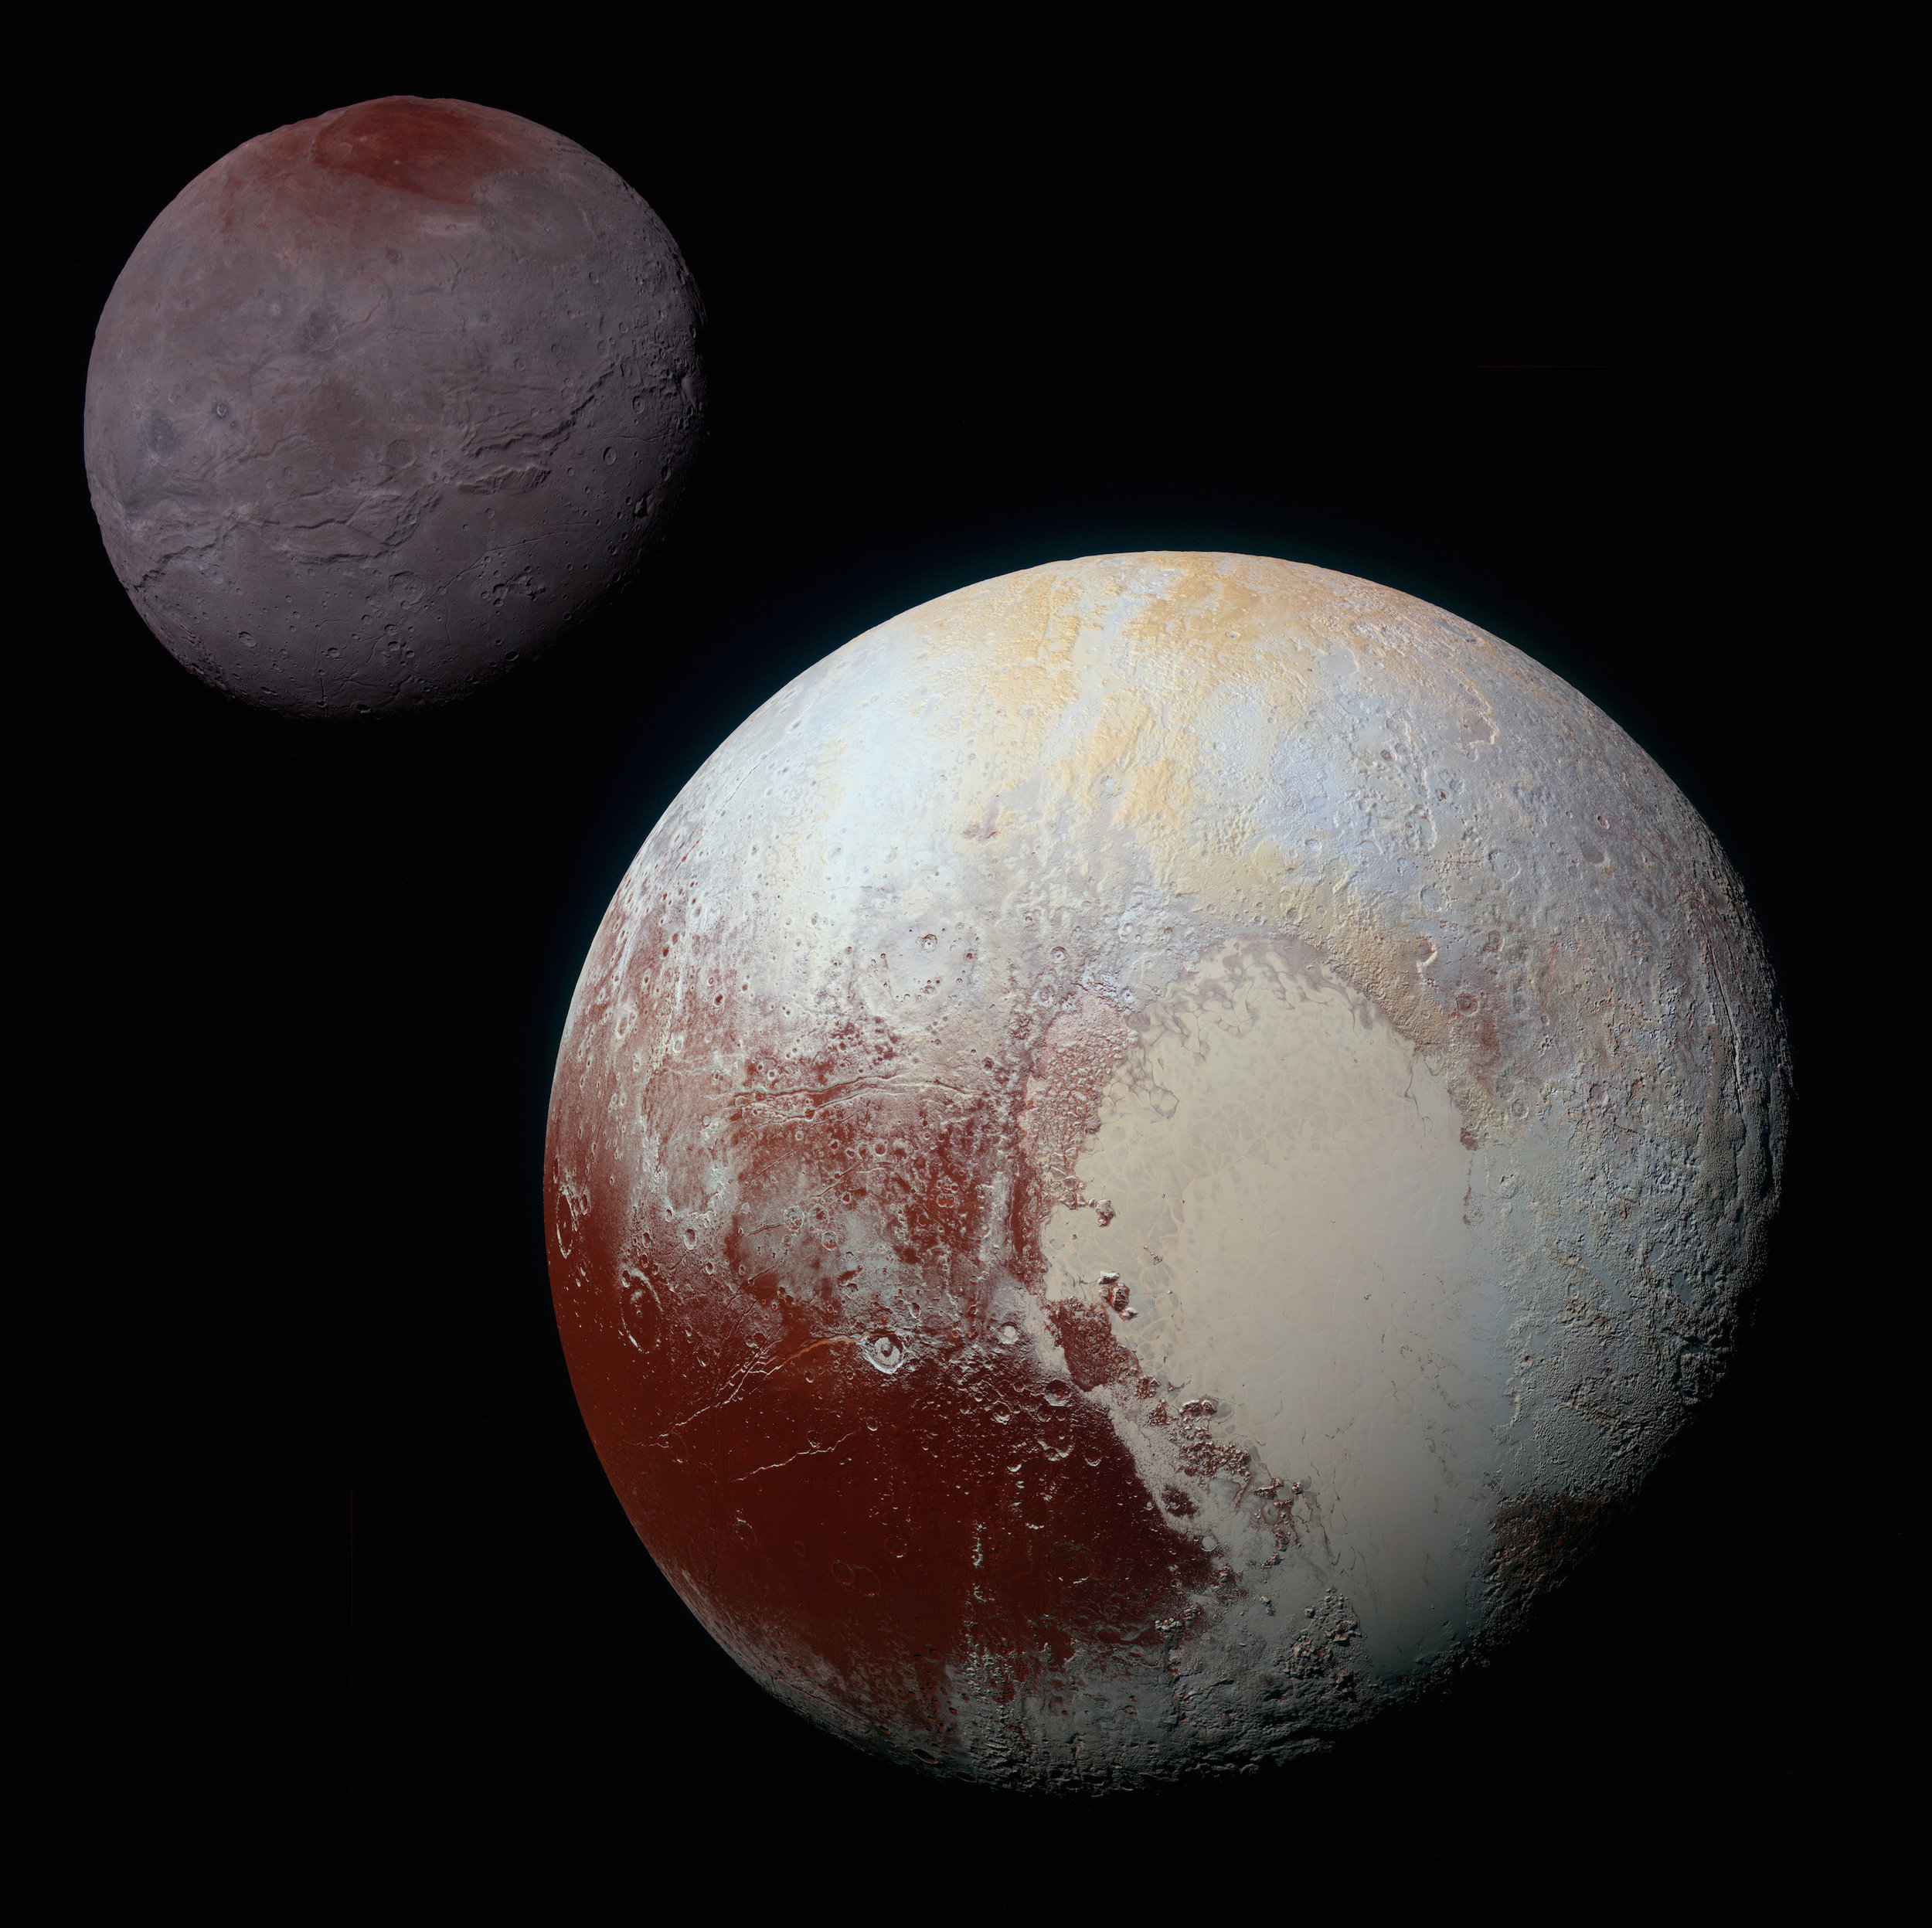 This composite of enhanced color images of Pluto (lower right) and Charon (upper left), taken by NASA's New Horizons spacecraft on July 14, 2015, highlights the wide range of surface features on the small worlds. Working with the New Horizons mission team, the International Astronomical Union (IAU) has approved the themes to be used for naming the surface features on Pluto and its moons. (Credit: NASA/JHUAPL/SwRI)